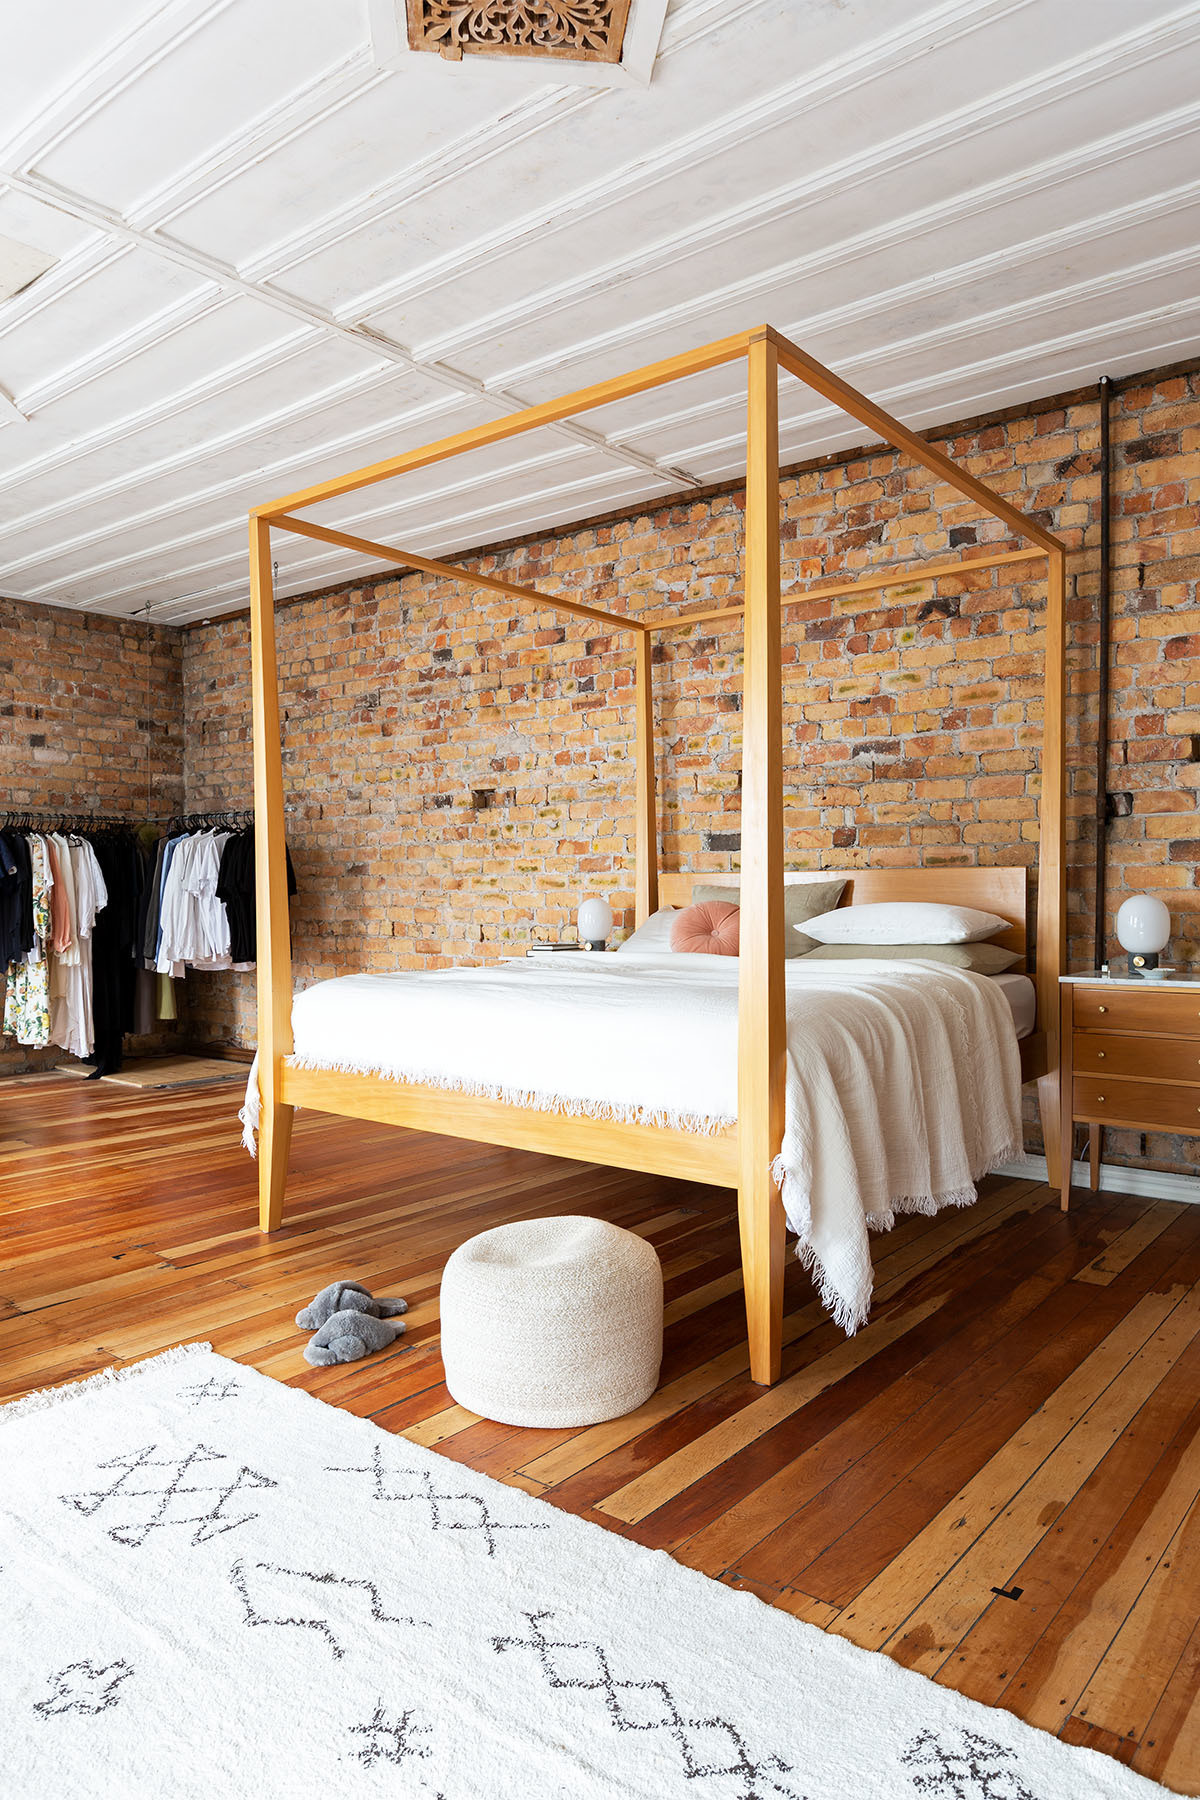 A warm, minimal bedroom aesthetic maximizes space and celebrates the hall's original features, like the exposed brick walls and ceiling detailing. Vintage Bed | Penney & Bennett, Wallace Cotton, Città Bedding | Città Throw | Kmart Pouf | Vintage Nightstands | Menu Lamps | Custom Clothes Rack.